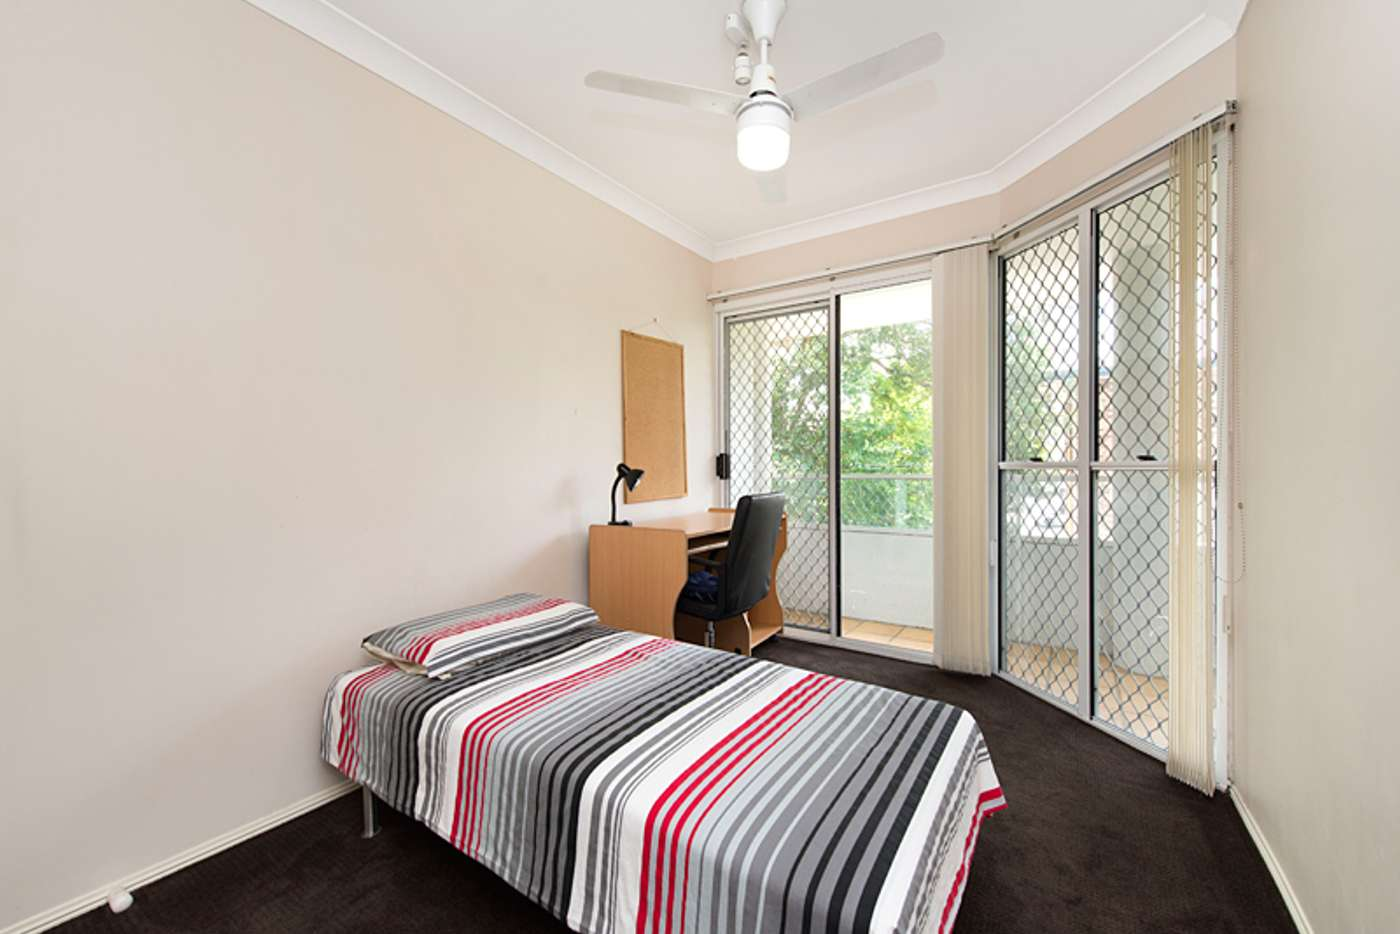 Sixth view of Homely unit listing, 9/214 Sir Fred Schonell Drive, St Lucia QLD 4067